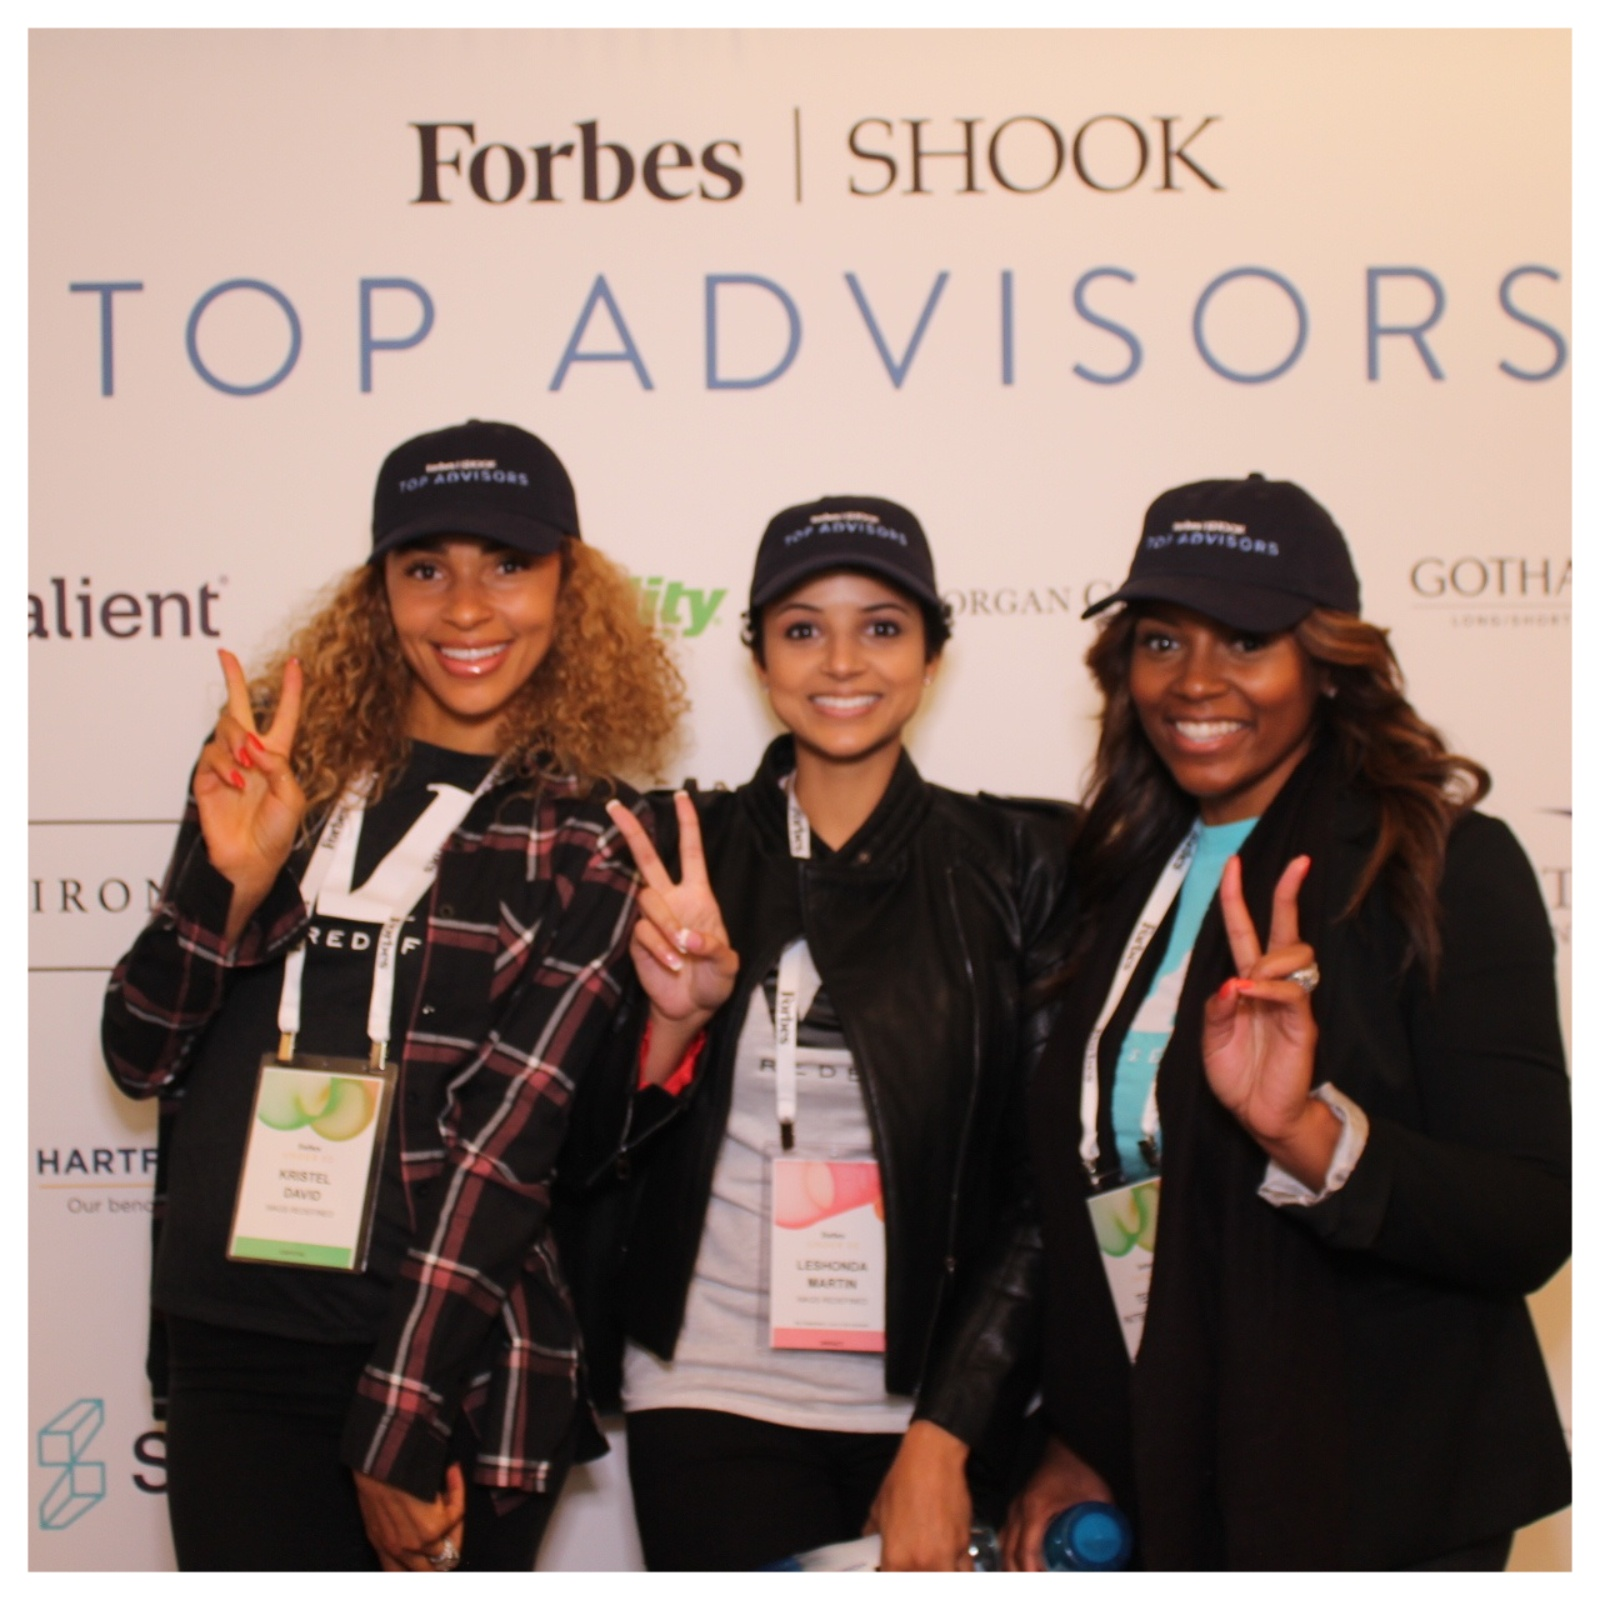 At the Forbes Under 30 Conference with other girlbosses